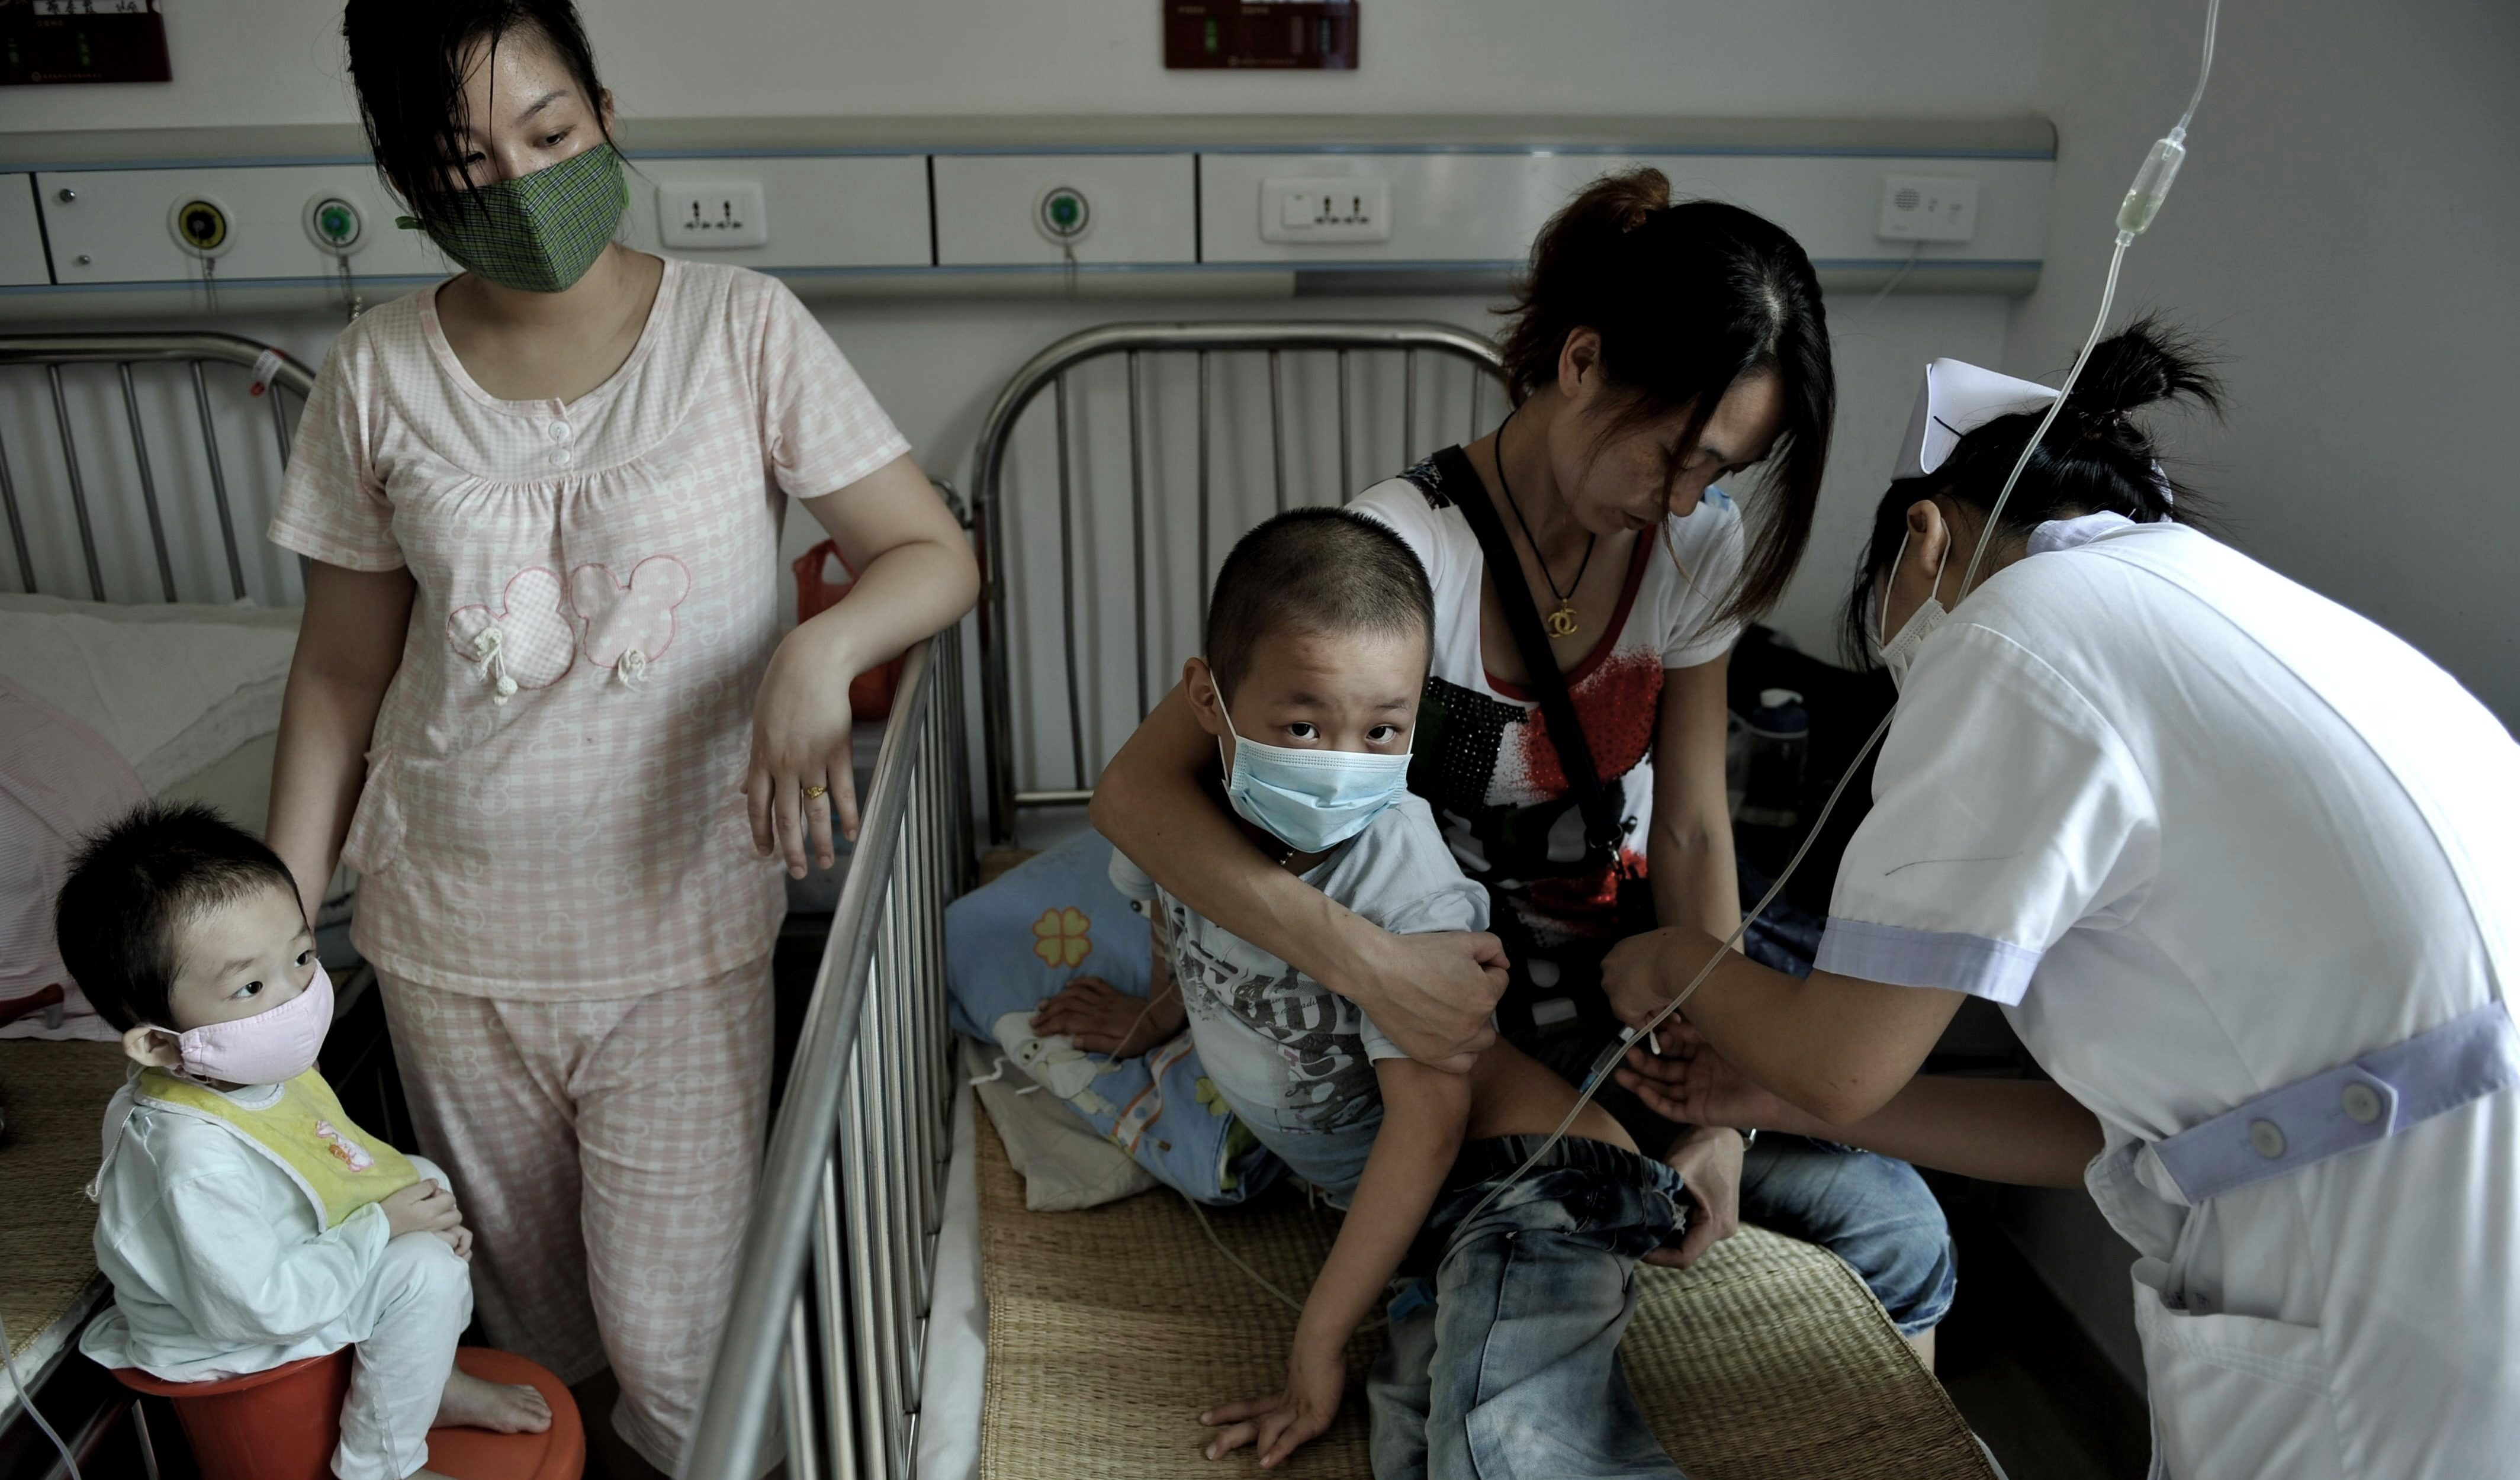 A nurse takes care of a leukemia patient in a bed in a hospital in Fuzhou in southeast China's Fujian province, Aug. 18, 2011.